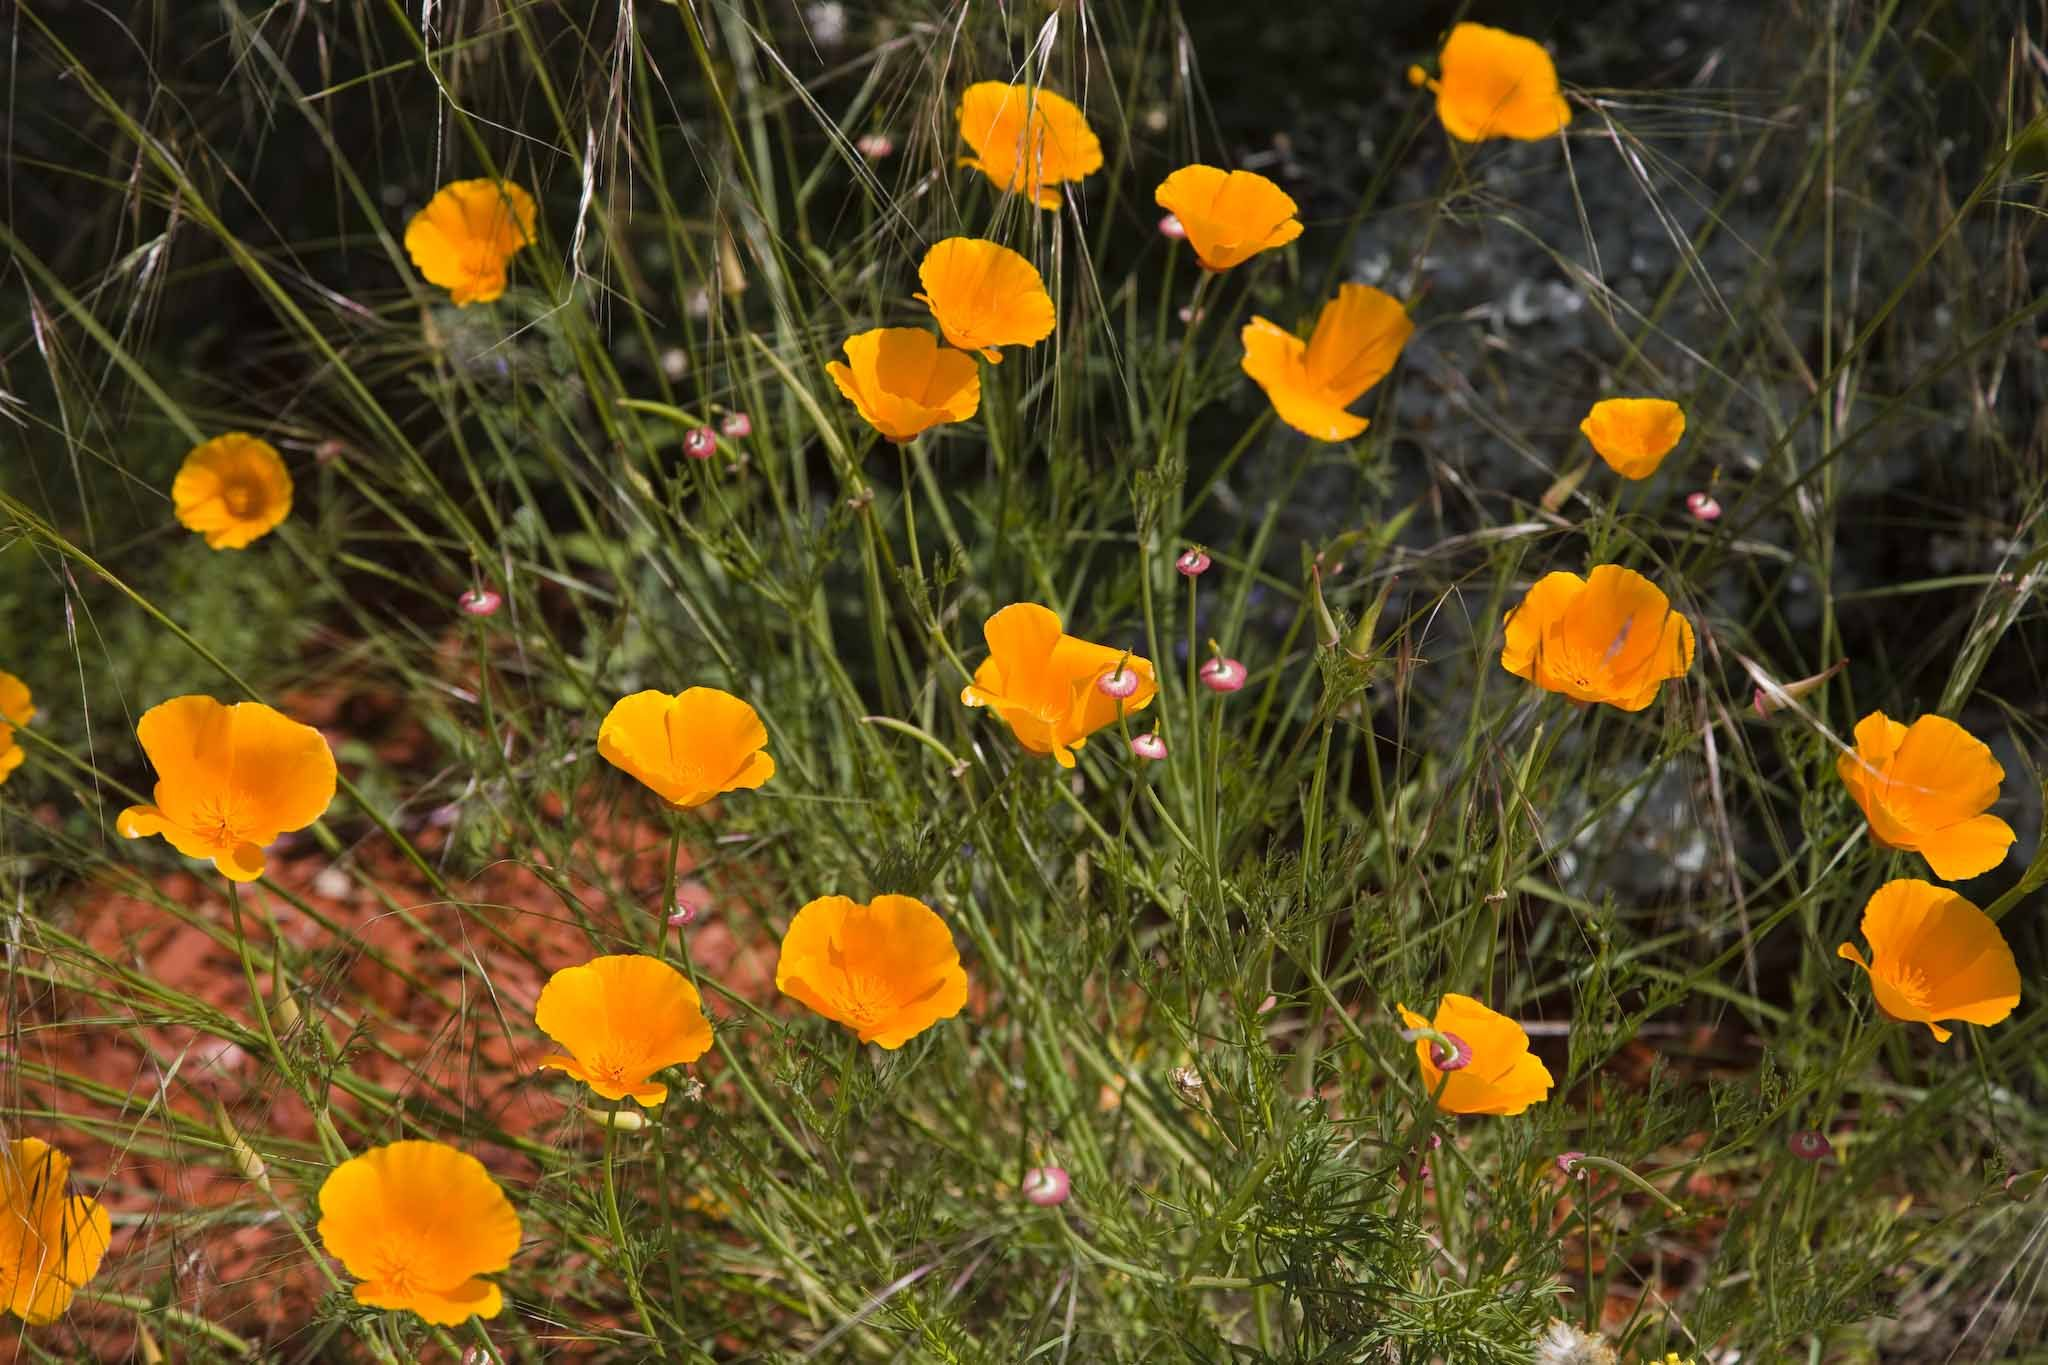 More California Poppies! Gotta love this water-wise golden plant ...